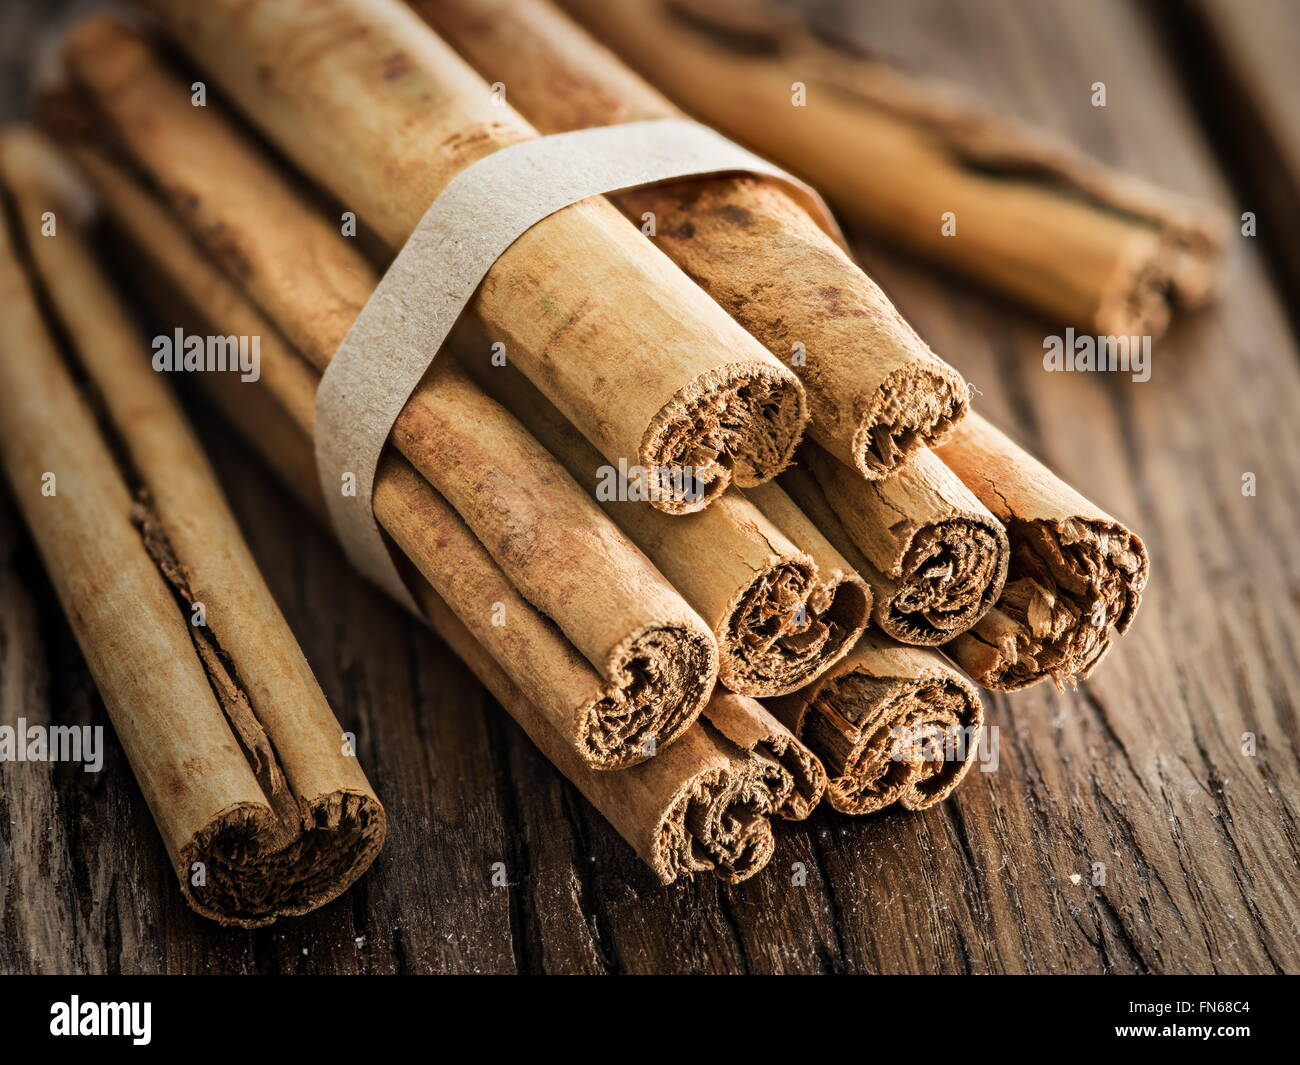 Cinnamon sticks on the wooden table. Close up. Stock Photo